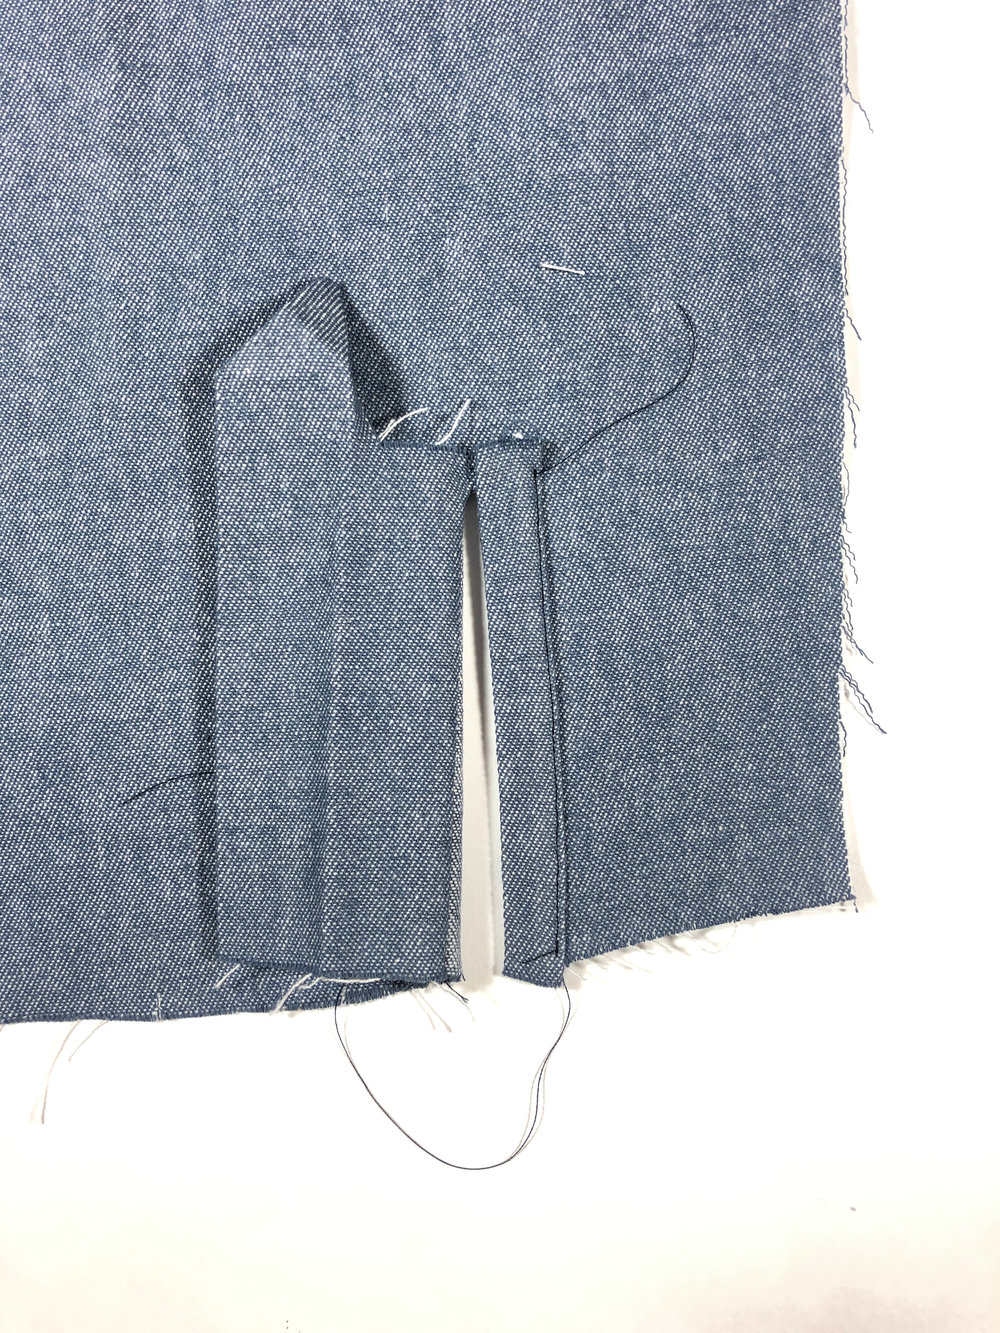 55. Edge stitch this side of the placket into place.